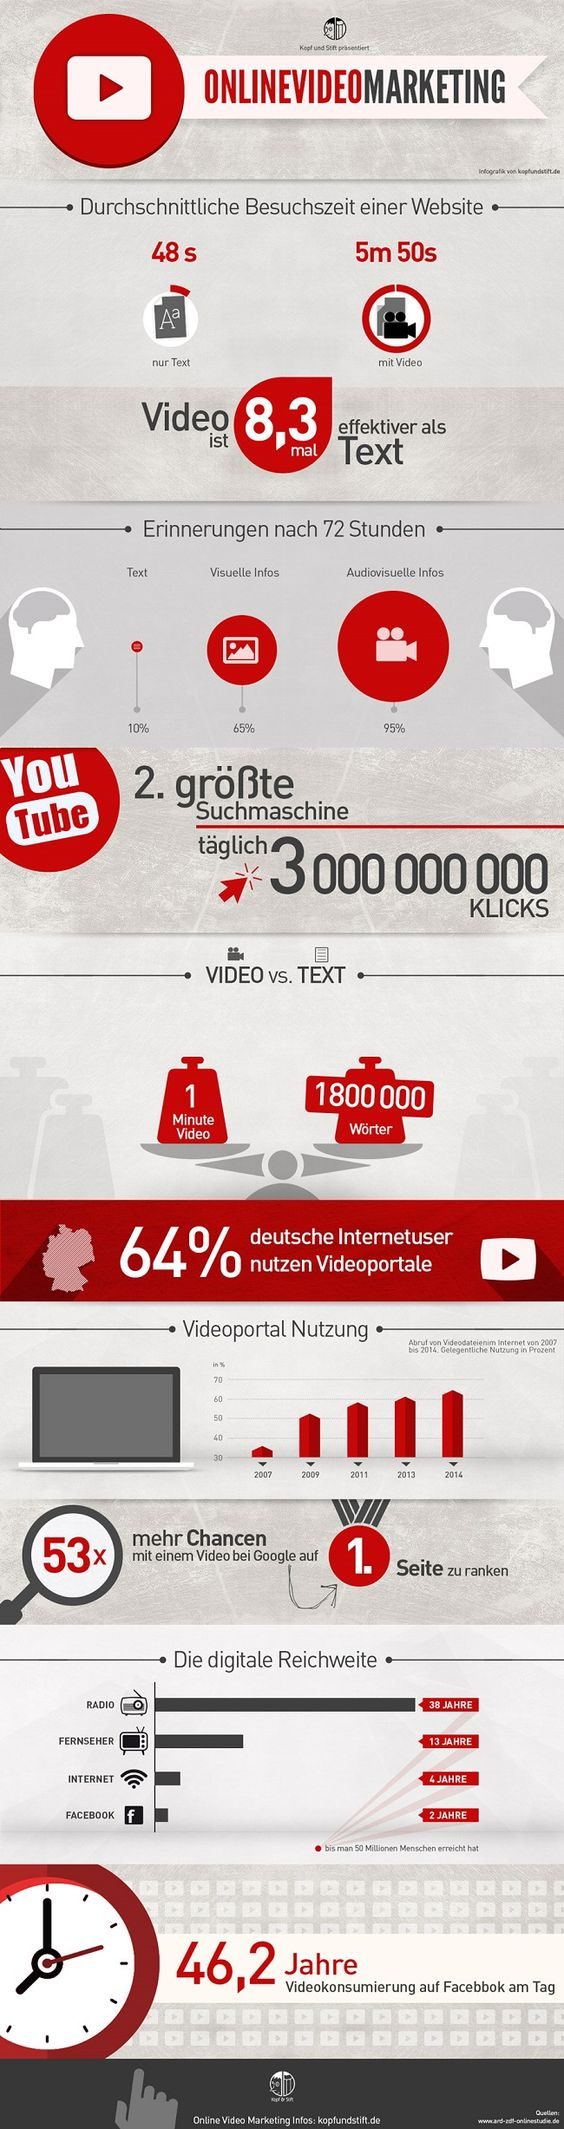 Websites - Infografik: Die Bedeutung von Video Marketing für das Online Marketing Konzept